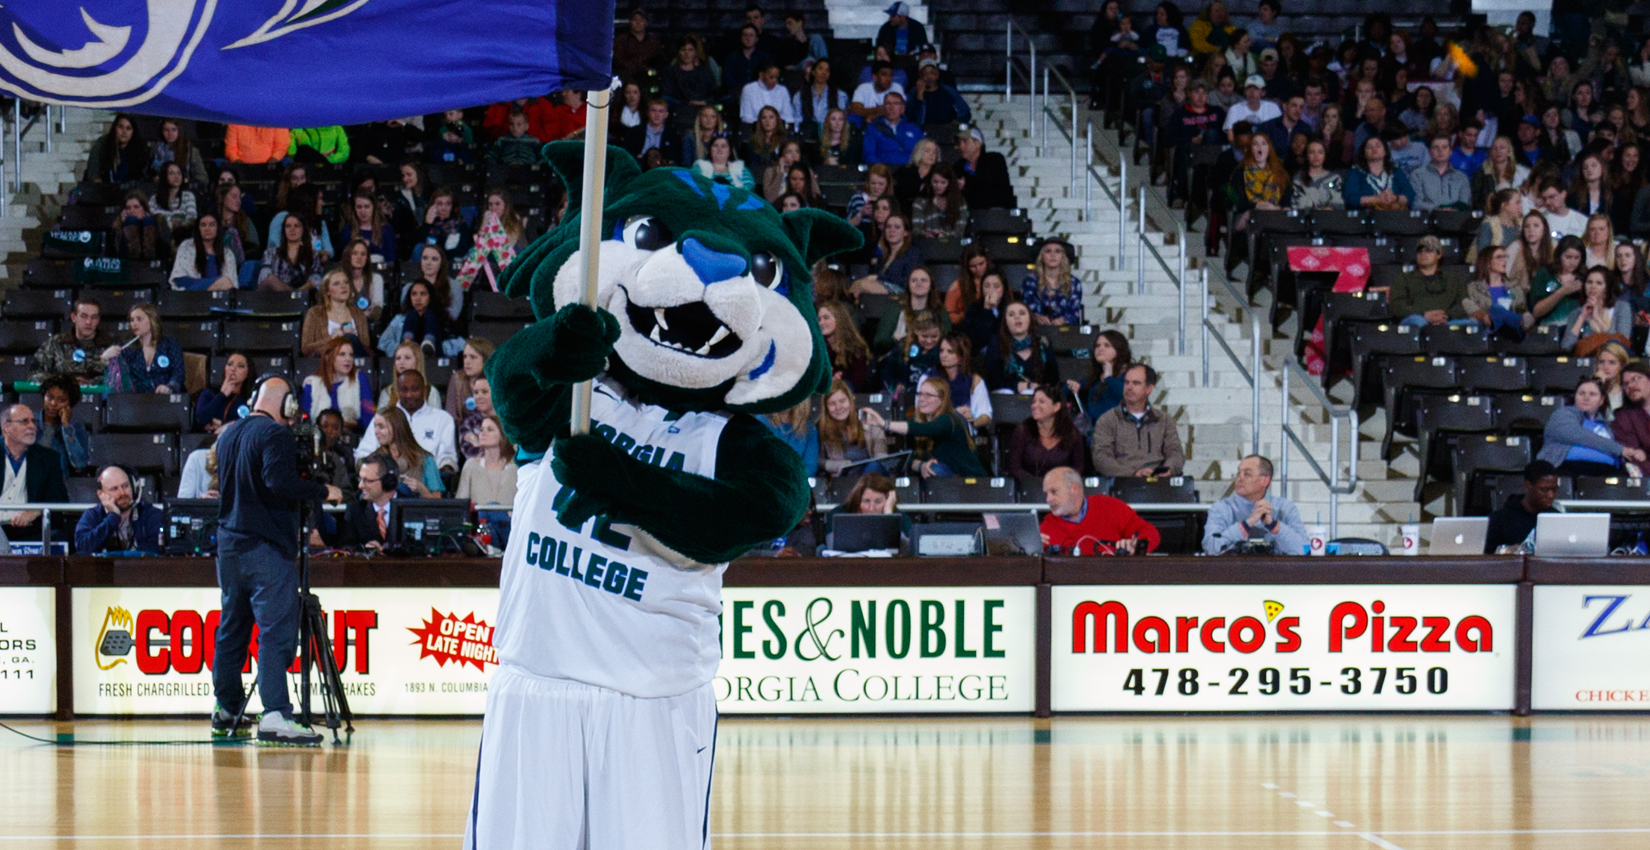 Thunder, the Bobcat Mascot